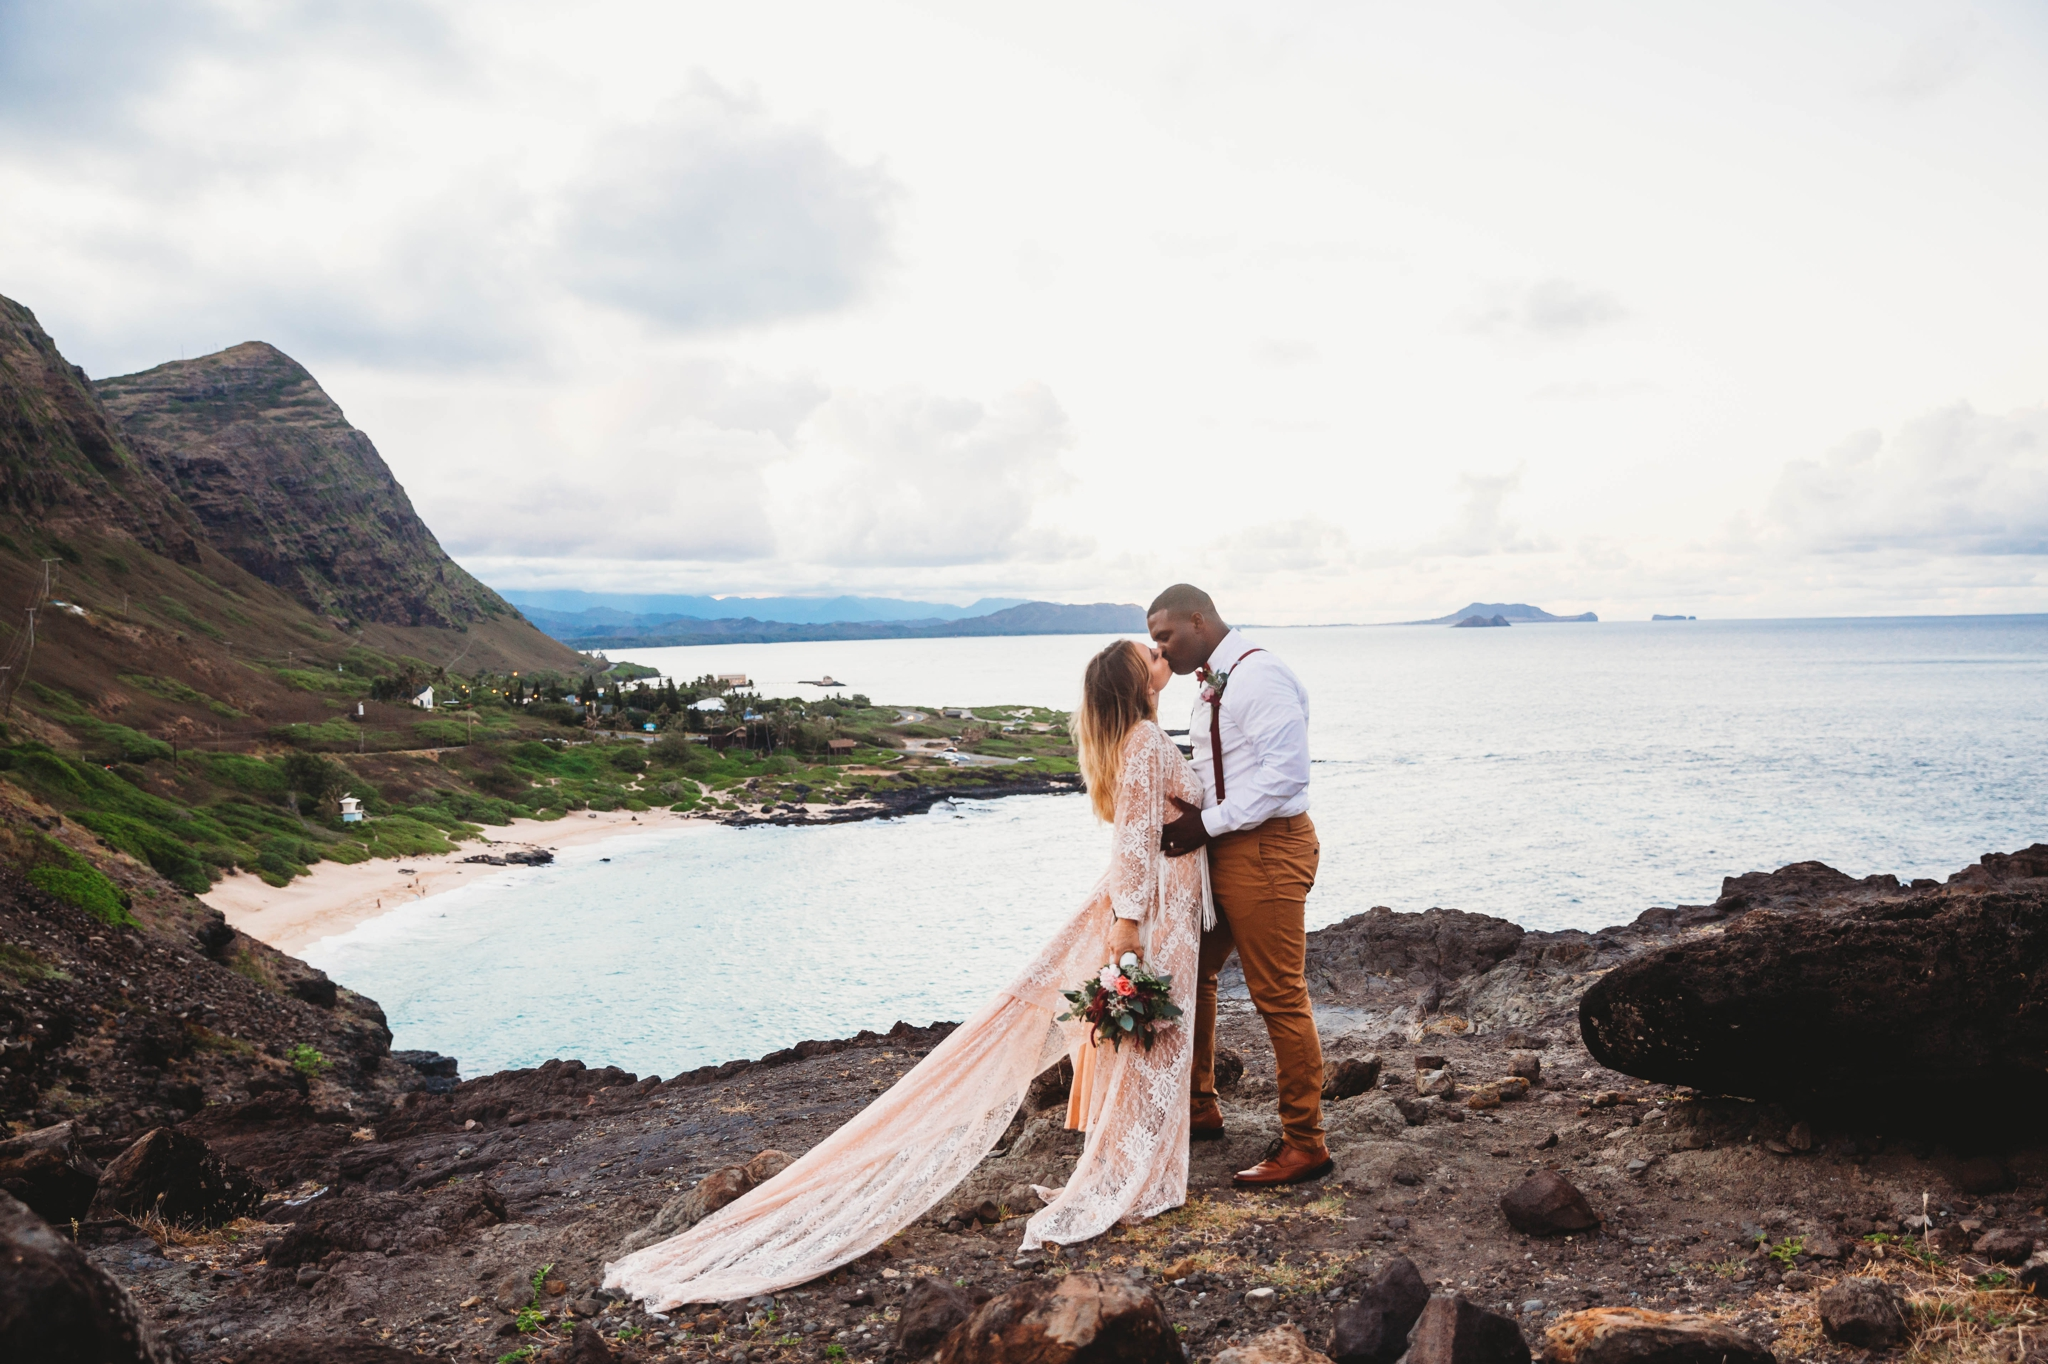 first kiss between bride and groom - wedding ceremony at Makapuu Lookout overlooking the ocean and beach, Waimanalo, HI - Oahu Hawaii Engagement Photographer - Bride in a flowy fringe boho wedding dress - lanikai lookout - deutsche hochzeits fotografin in hawaii - smal1 - dark and moody - true to live